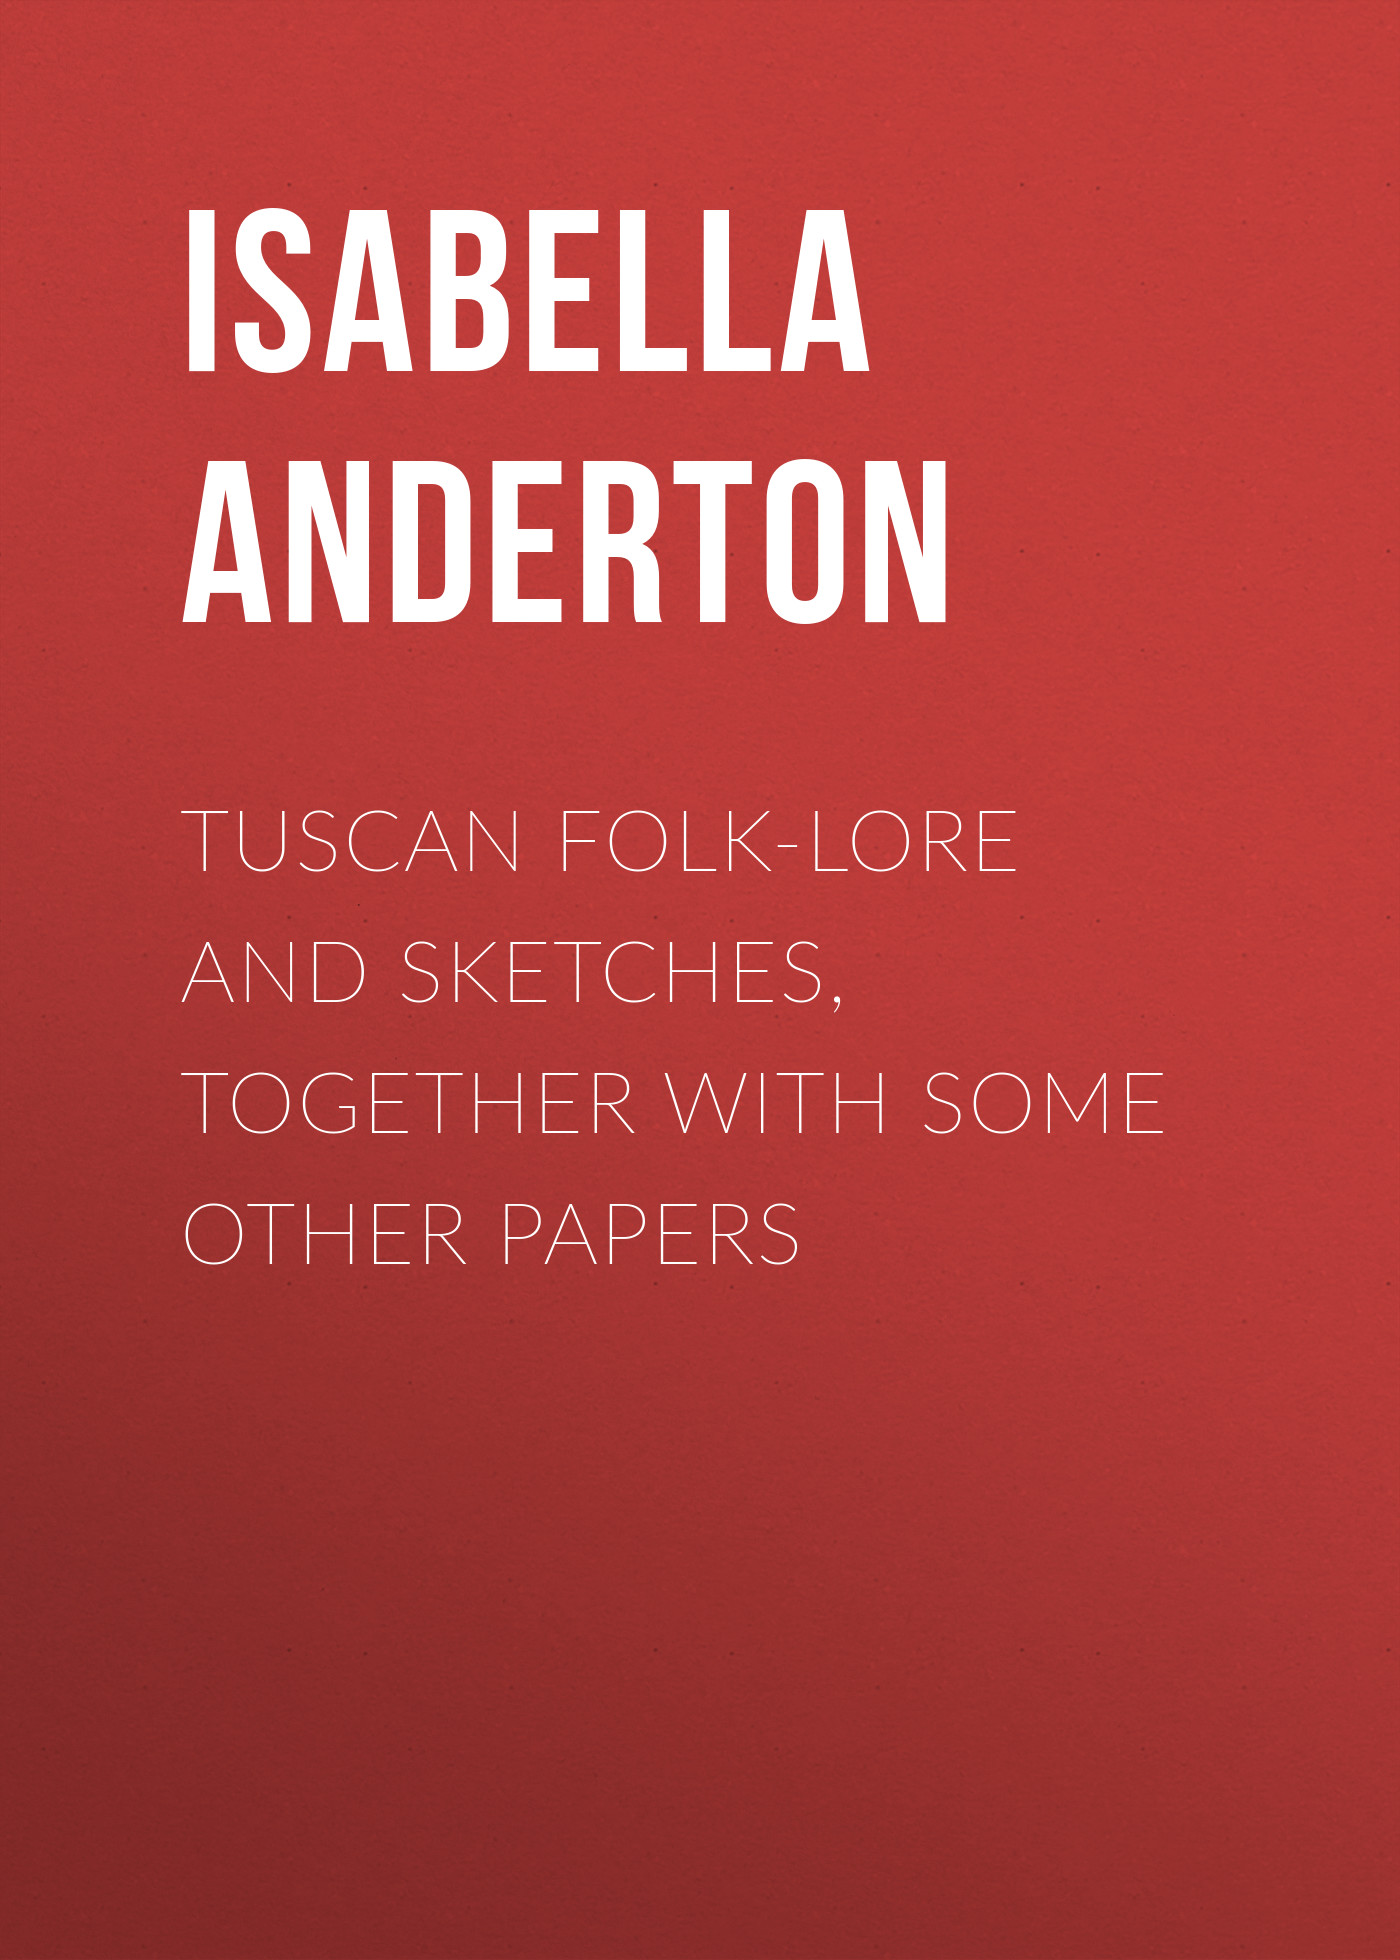 Anderton Isabella M. Tuscan folk-lore and sketches, together with some other papers sketches in lavender blue and green